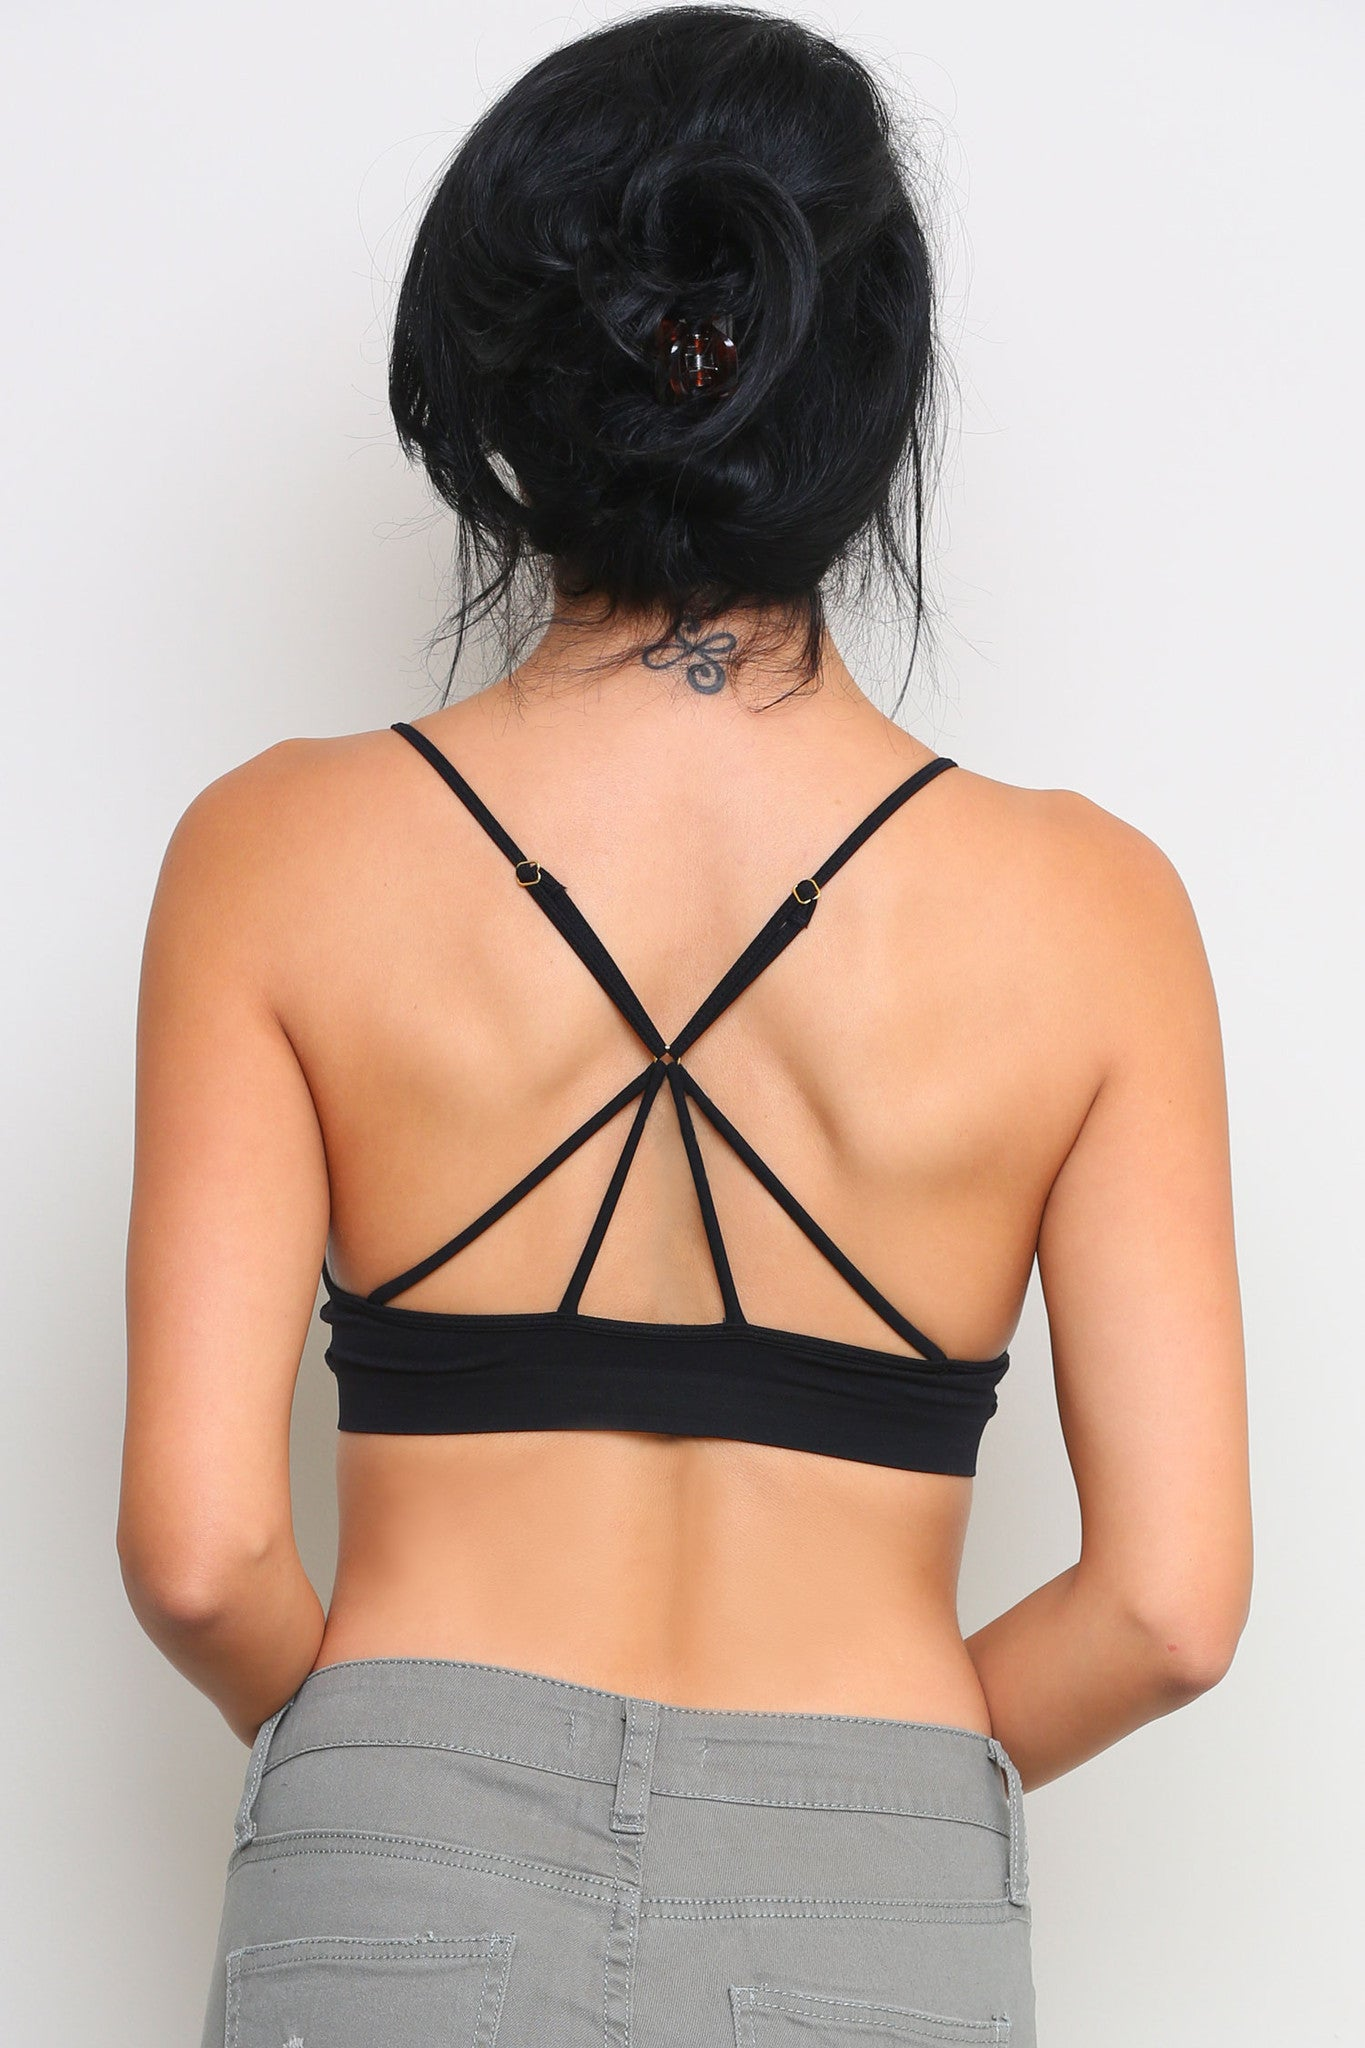 Y BACK BRALETTE - Glam Envy - 3